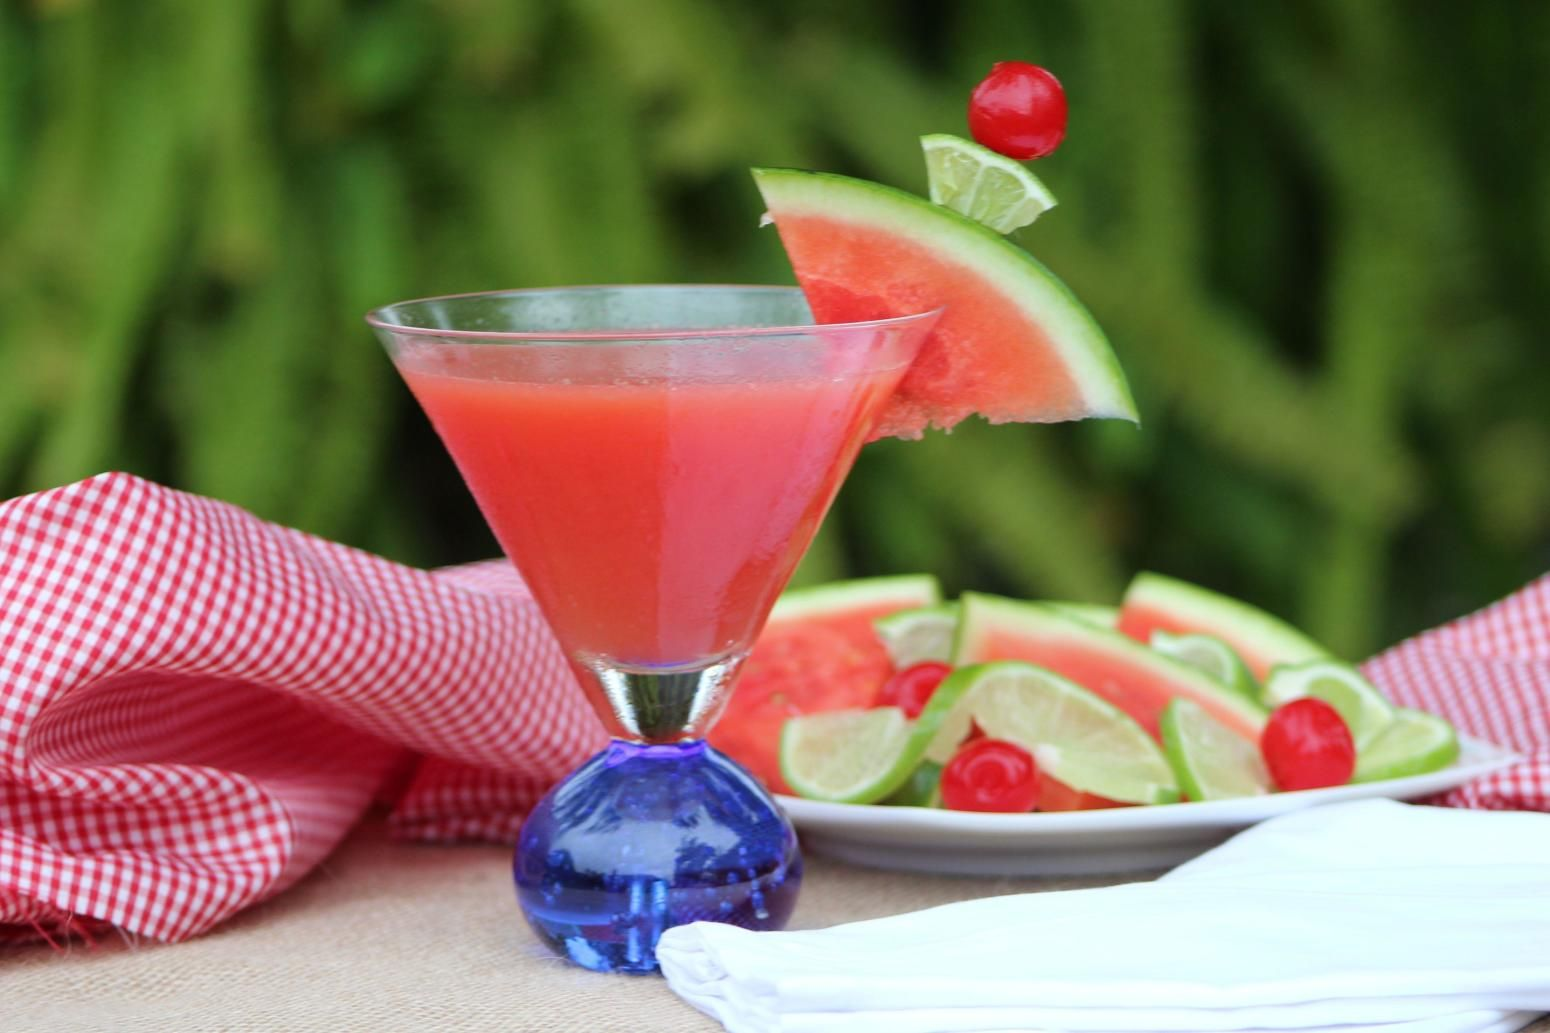 Tropical Mist Cosmo Recipe Watermelon Drink Healthy Drinks Smoothies Summertime Drinks